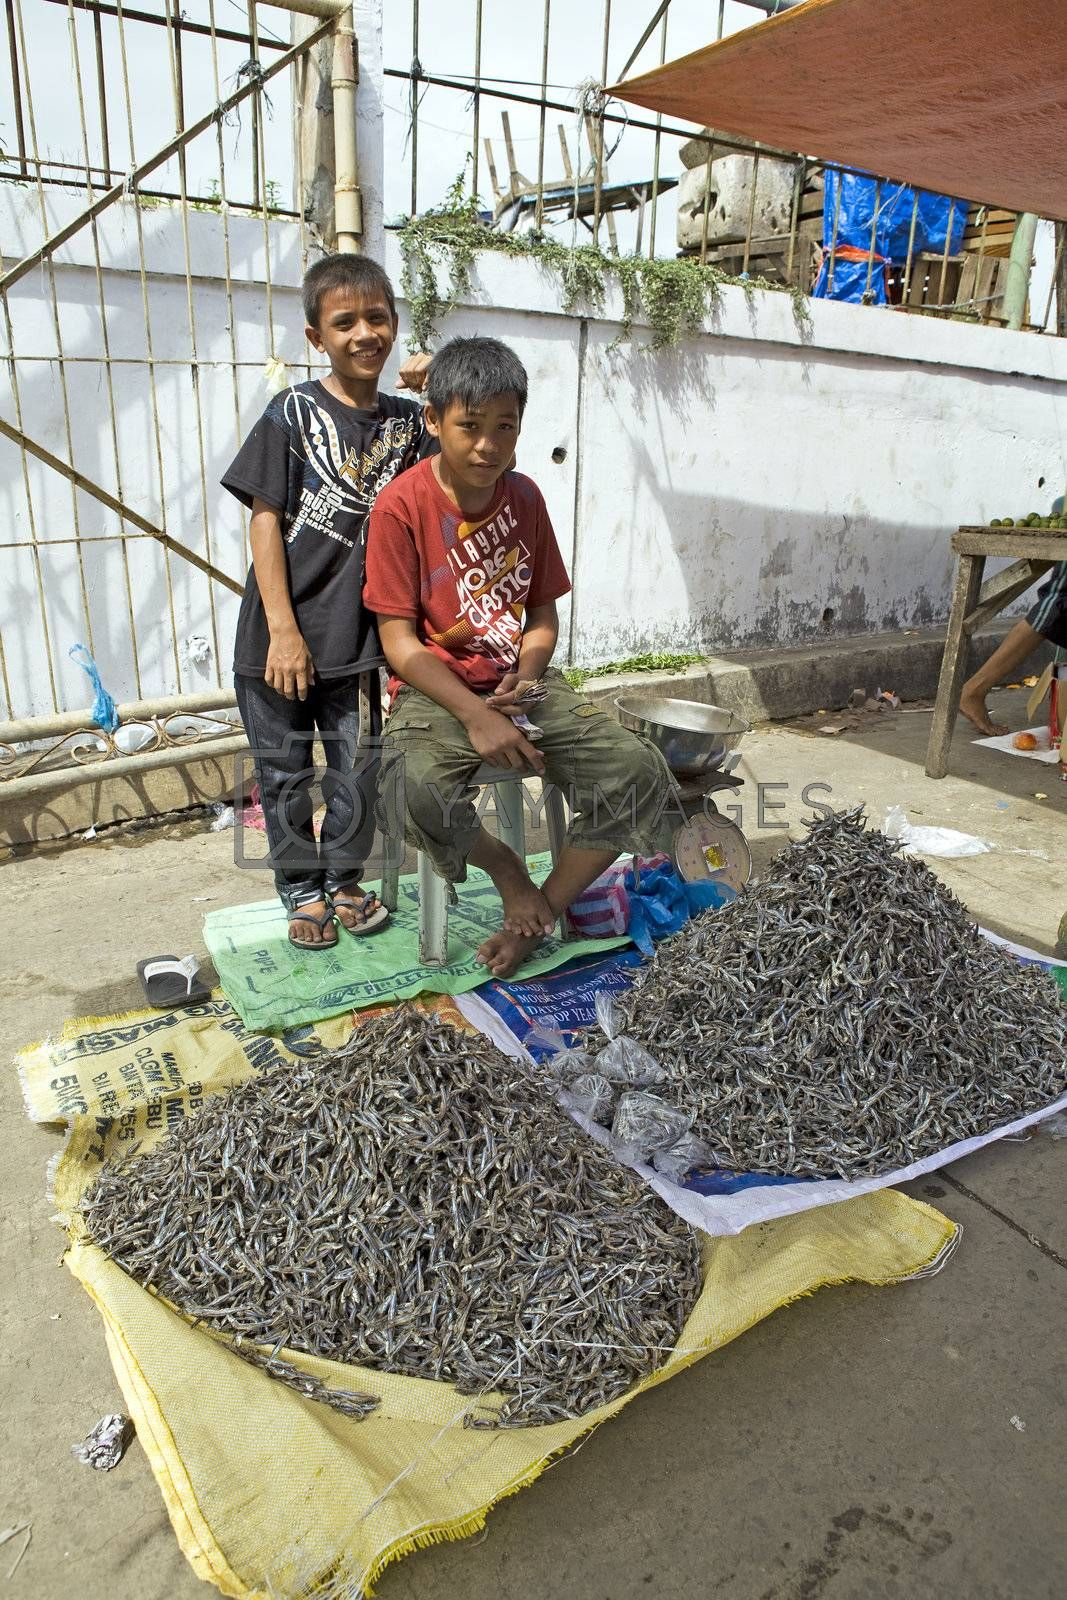 March 2012 - Capiz City, Negros Oriental, Philippines - Two young Filipino boys help thier families work selling dried fish at the local public market in Capiz City.